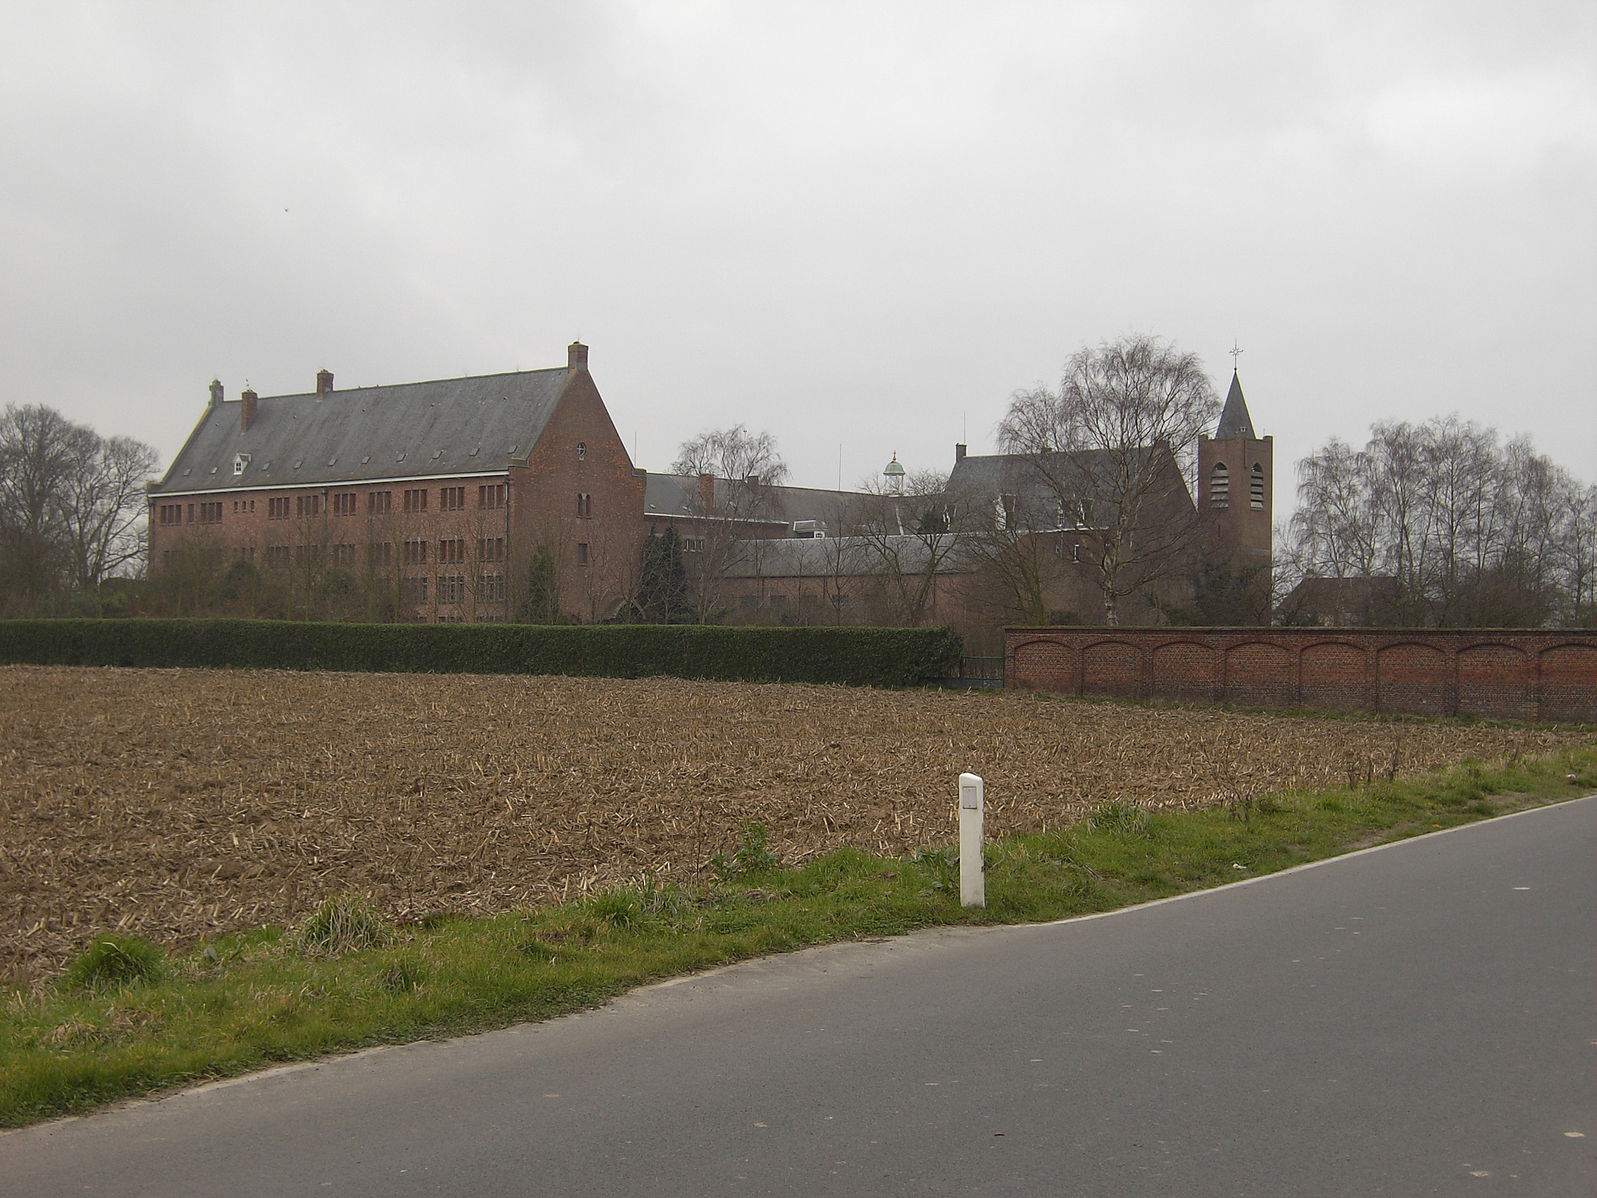 Affligem Abbey. By Spotter2 - Own work, CC BY-SA 3.0,  https://commons.wikimedia.org/w/index.php?curid=3612364